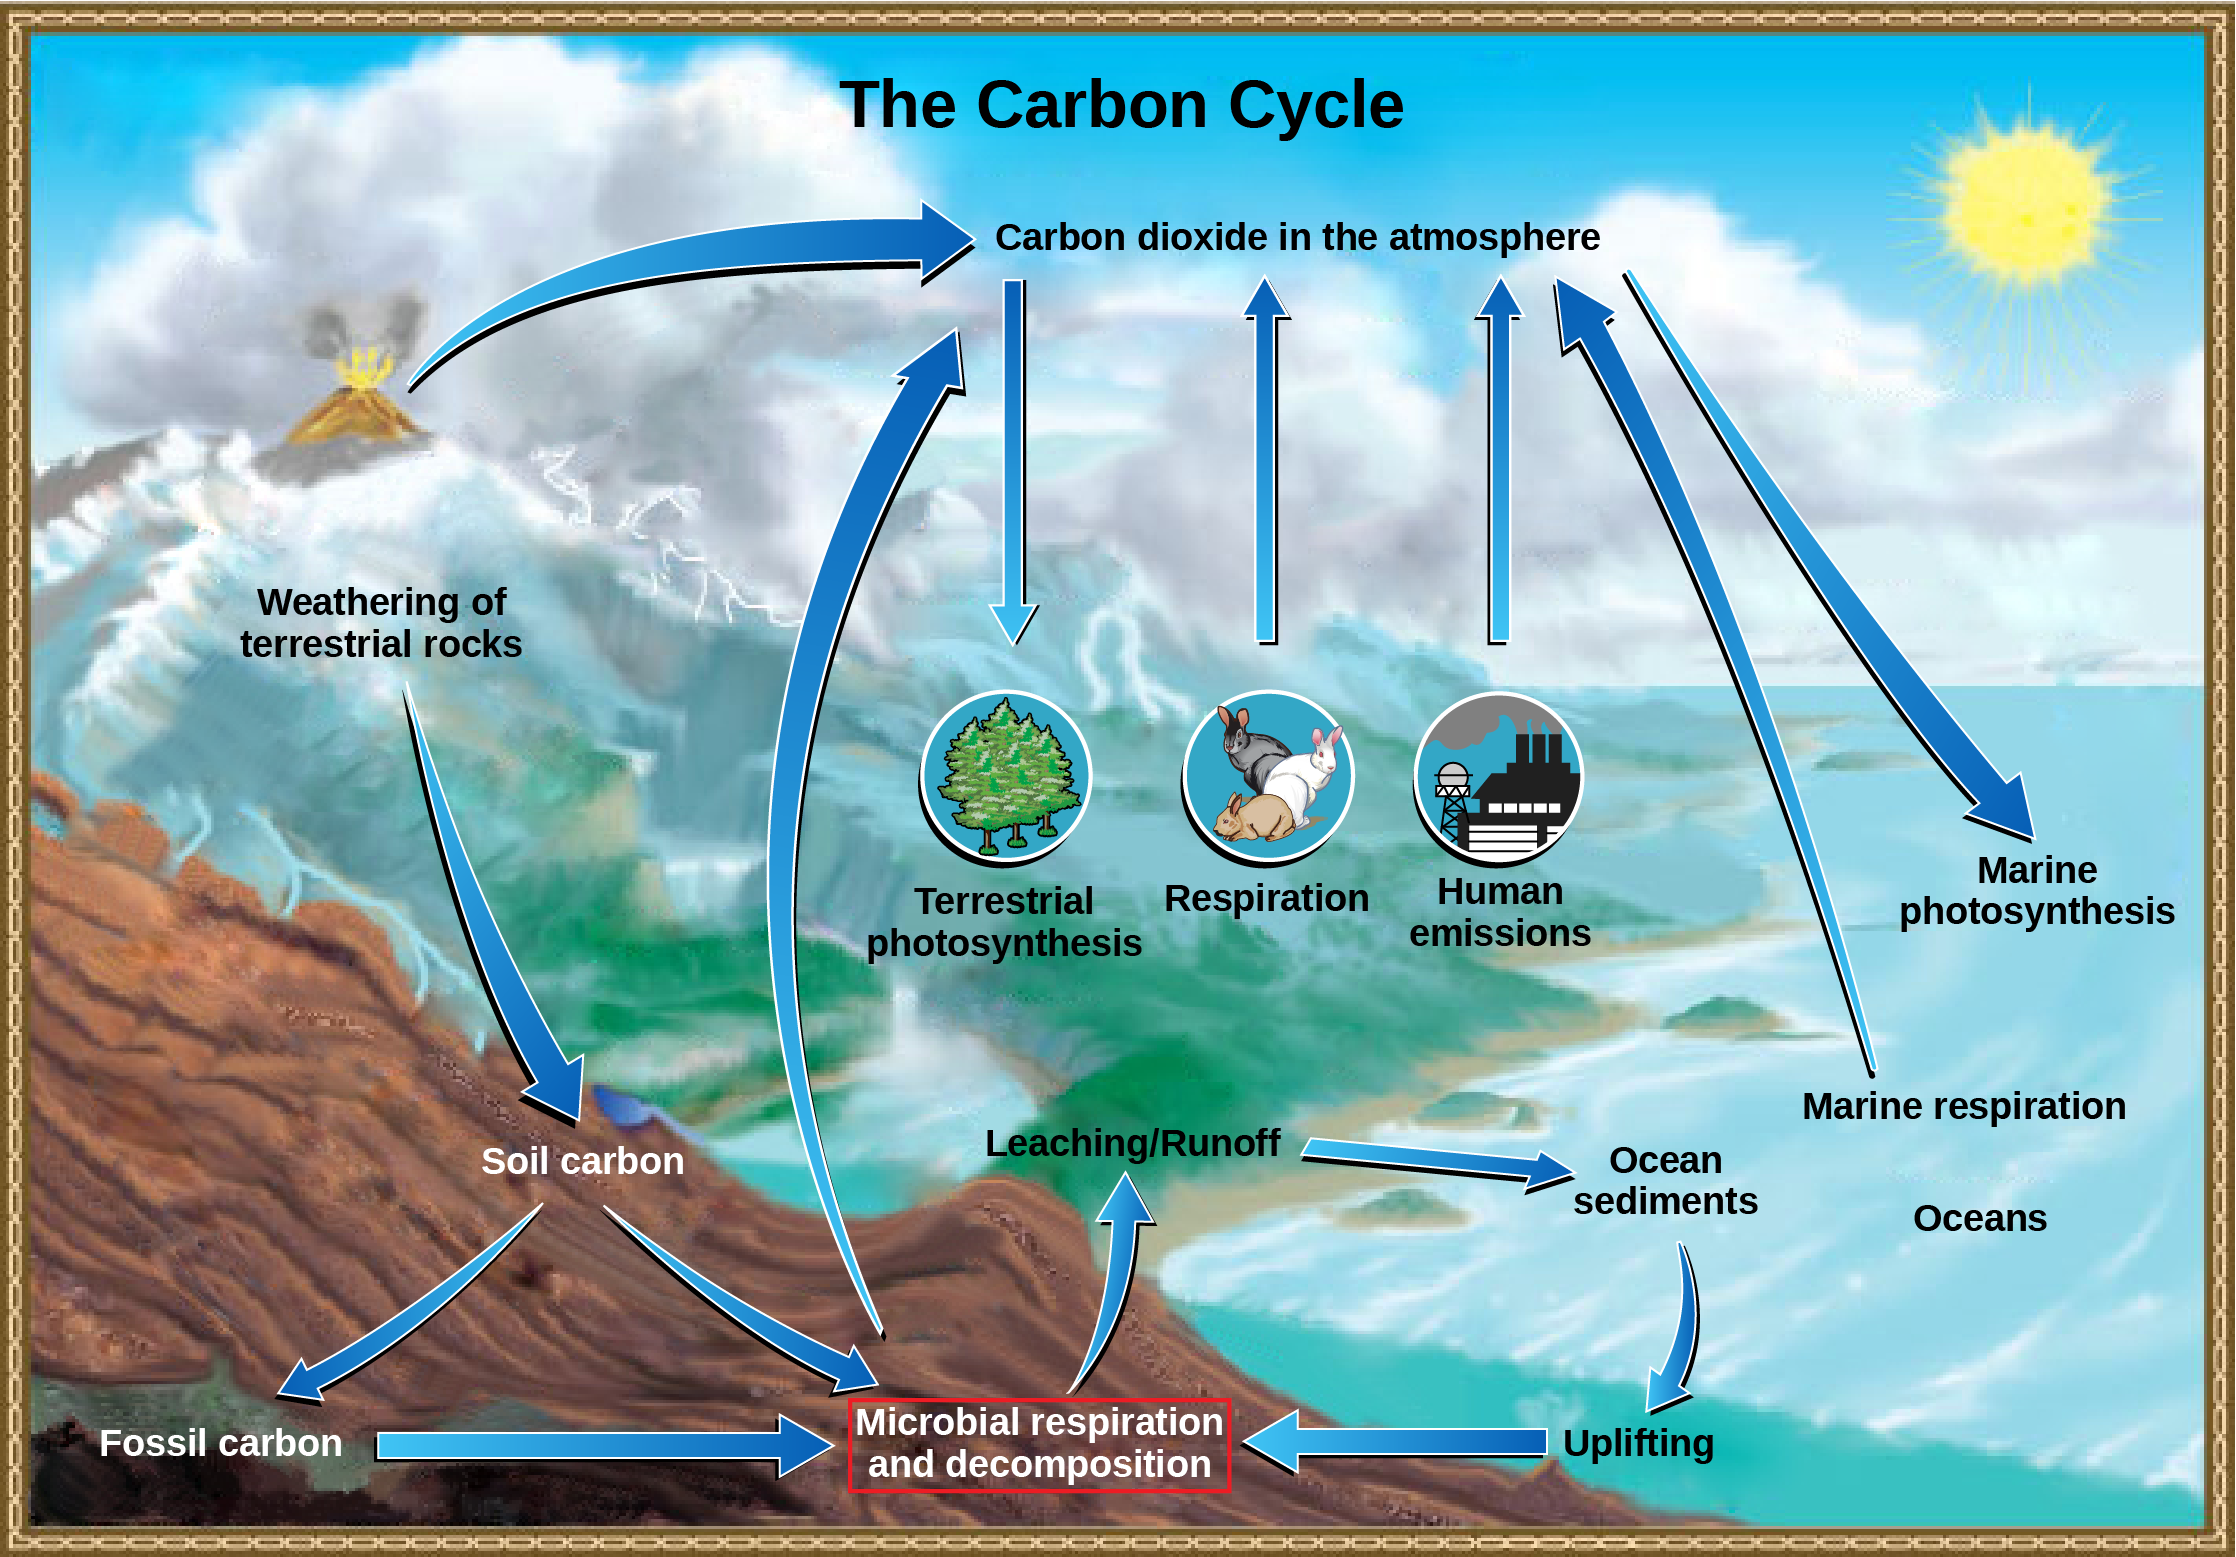 An illustration shows the carbon lifecycle.  Carbon dioxide in the atmosphere occurs by way of volcanic eruptions, animal, microbial and marine respiration, and human emissions - such as from factories.  It is absorbed by terrestrial photosynthesis from plants, and marine photosynthesis.  The weathering of terrestrial rocks turns into soil carbon, which then branches into either fossil carbon, or microbial respiration and decomposition; fossil carbon also contributes to this.  This decomposition has a leaching, or runoff effect, and enters the ocean as sediments.